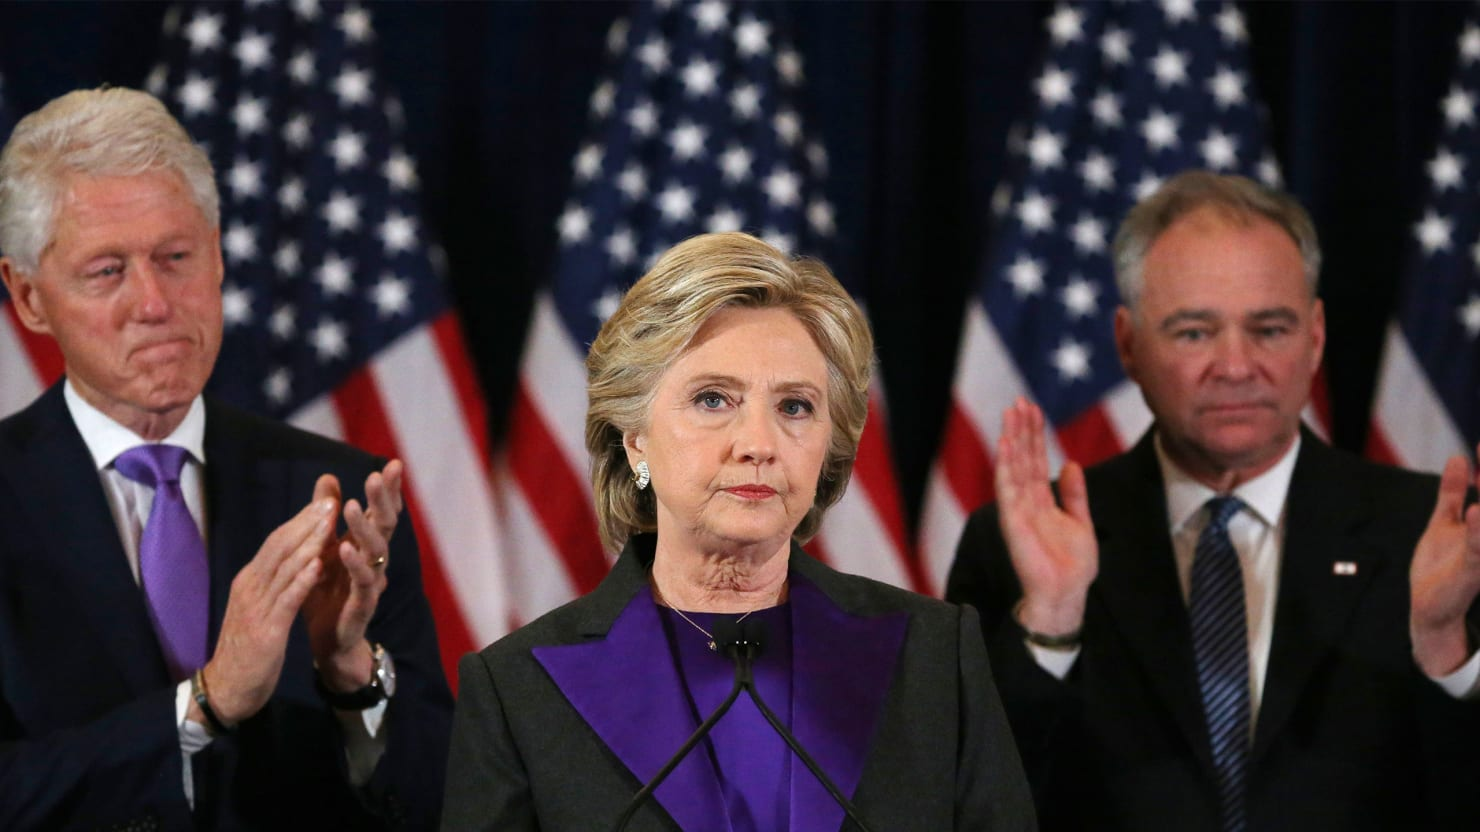 Seven Reasons Why Hillary Clinton Lost and Donald Trump Won